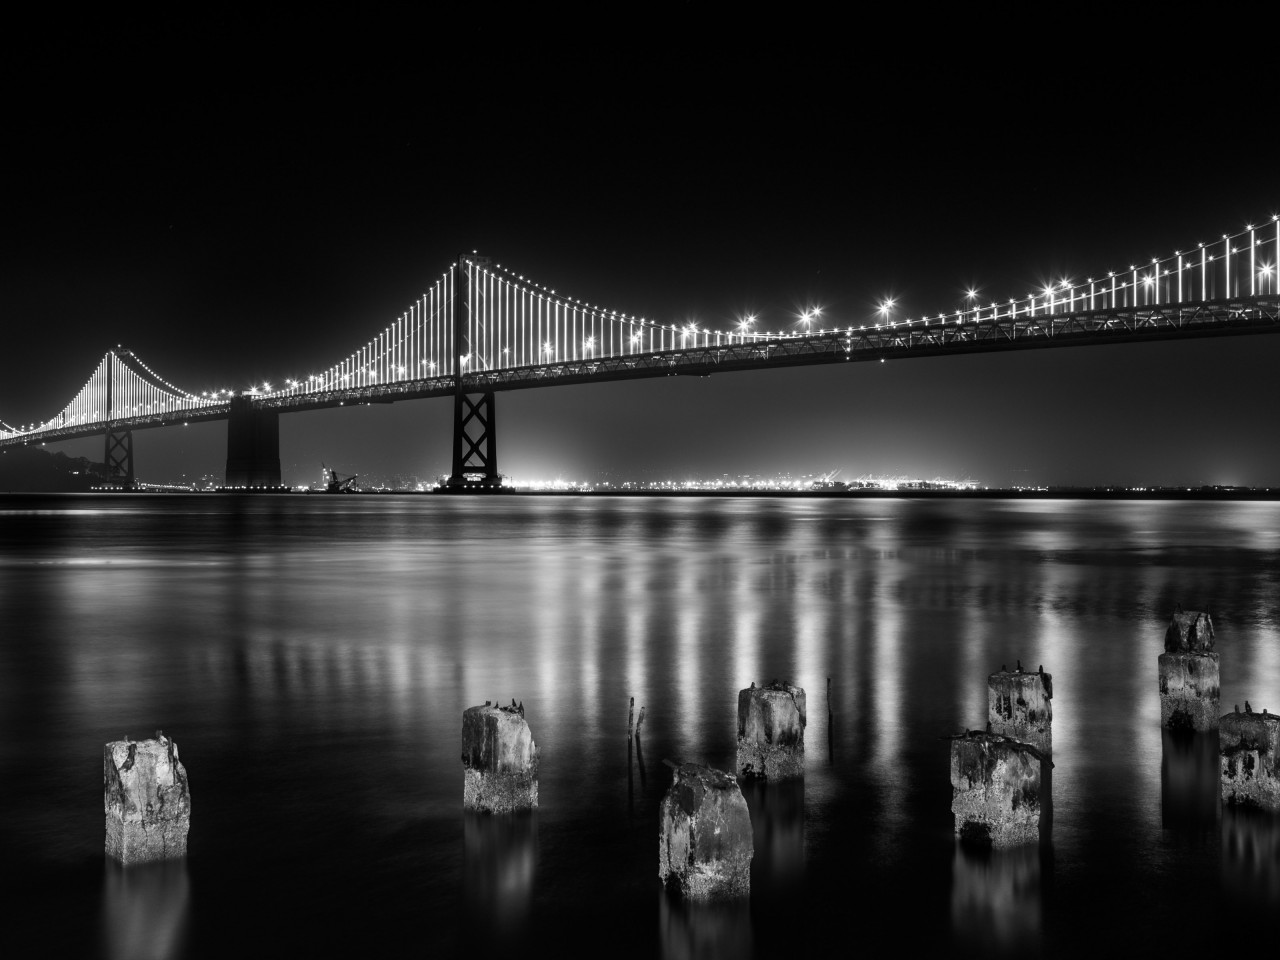 Bay bridge from San Francisco wallpaper 1280x960